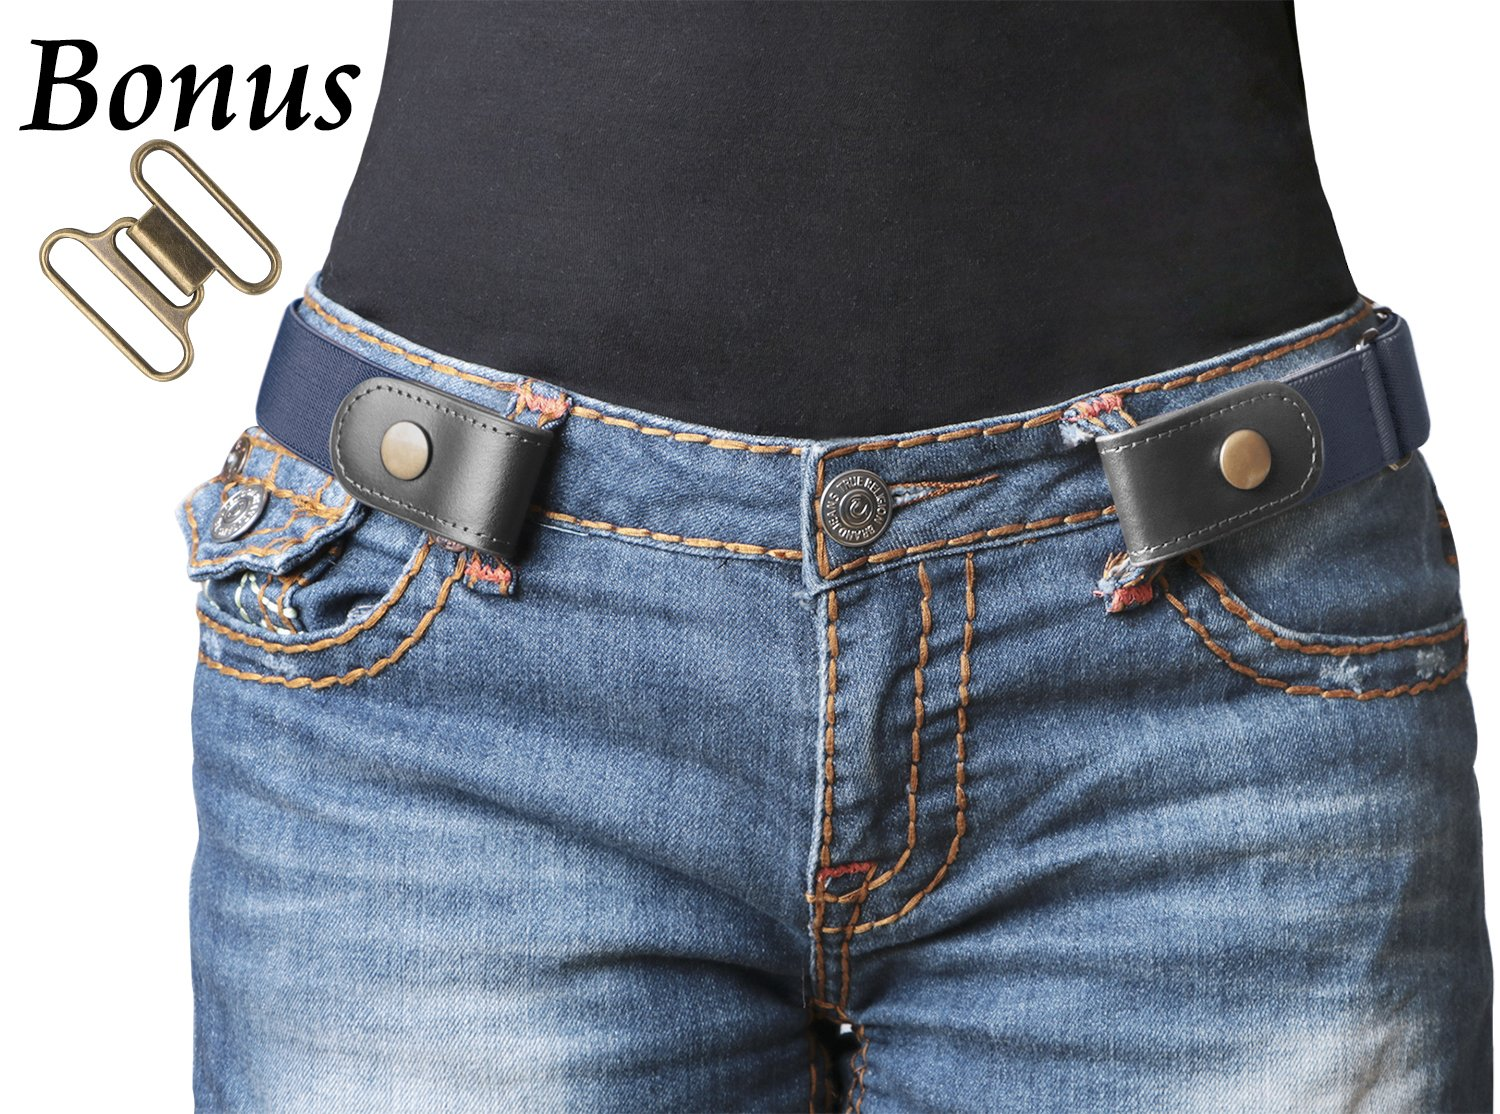 No Buckle Stretch Belt For Women/Men Elastic Waist Belt Up to 48 for Jeans Pants